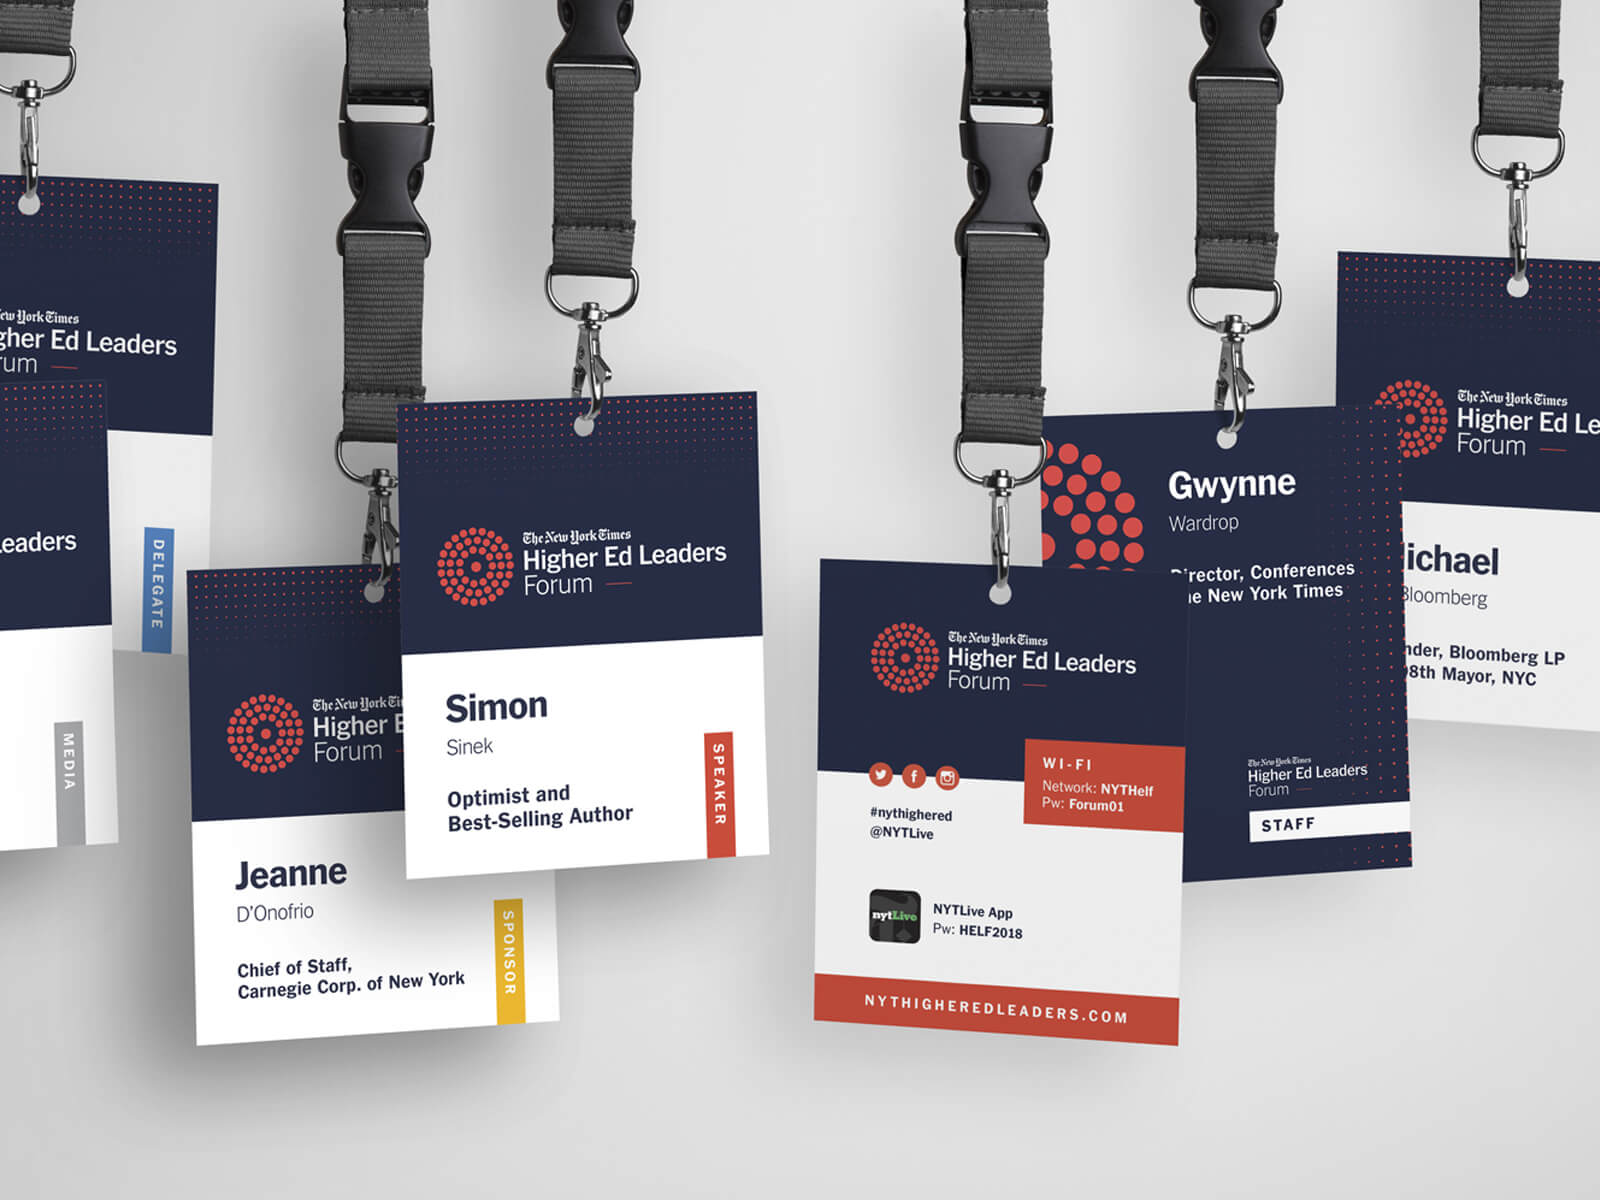 New York Times event credentials/badges